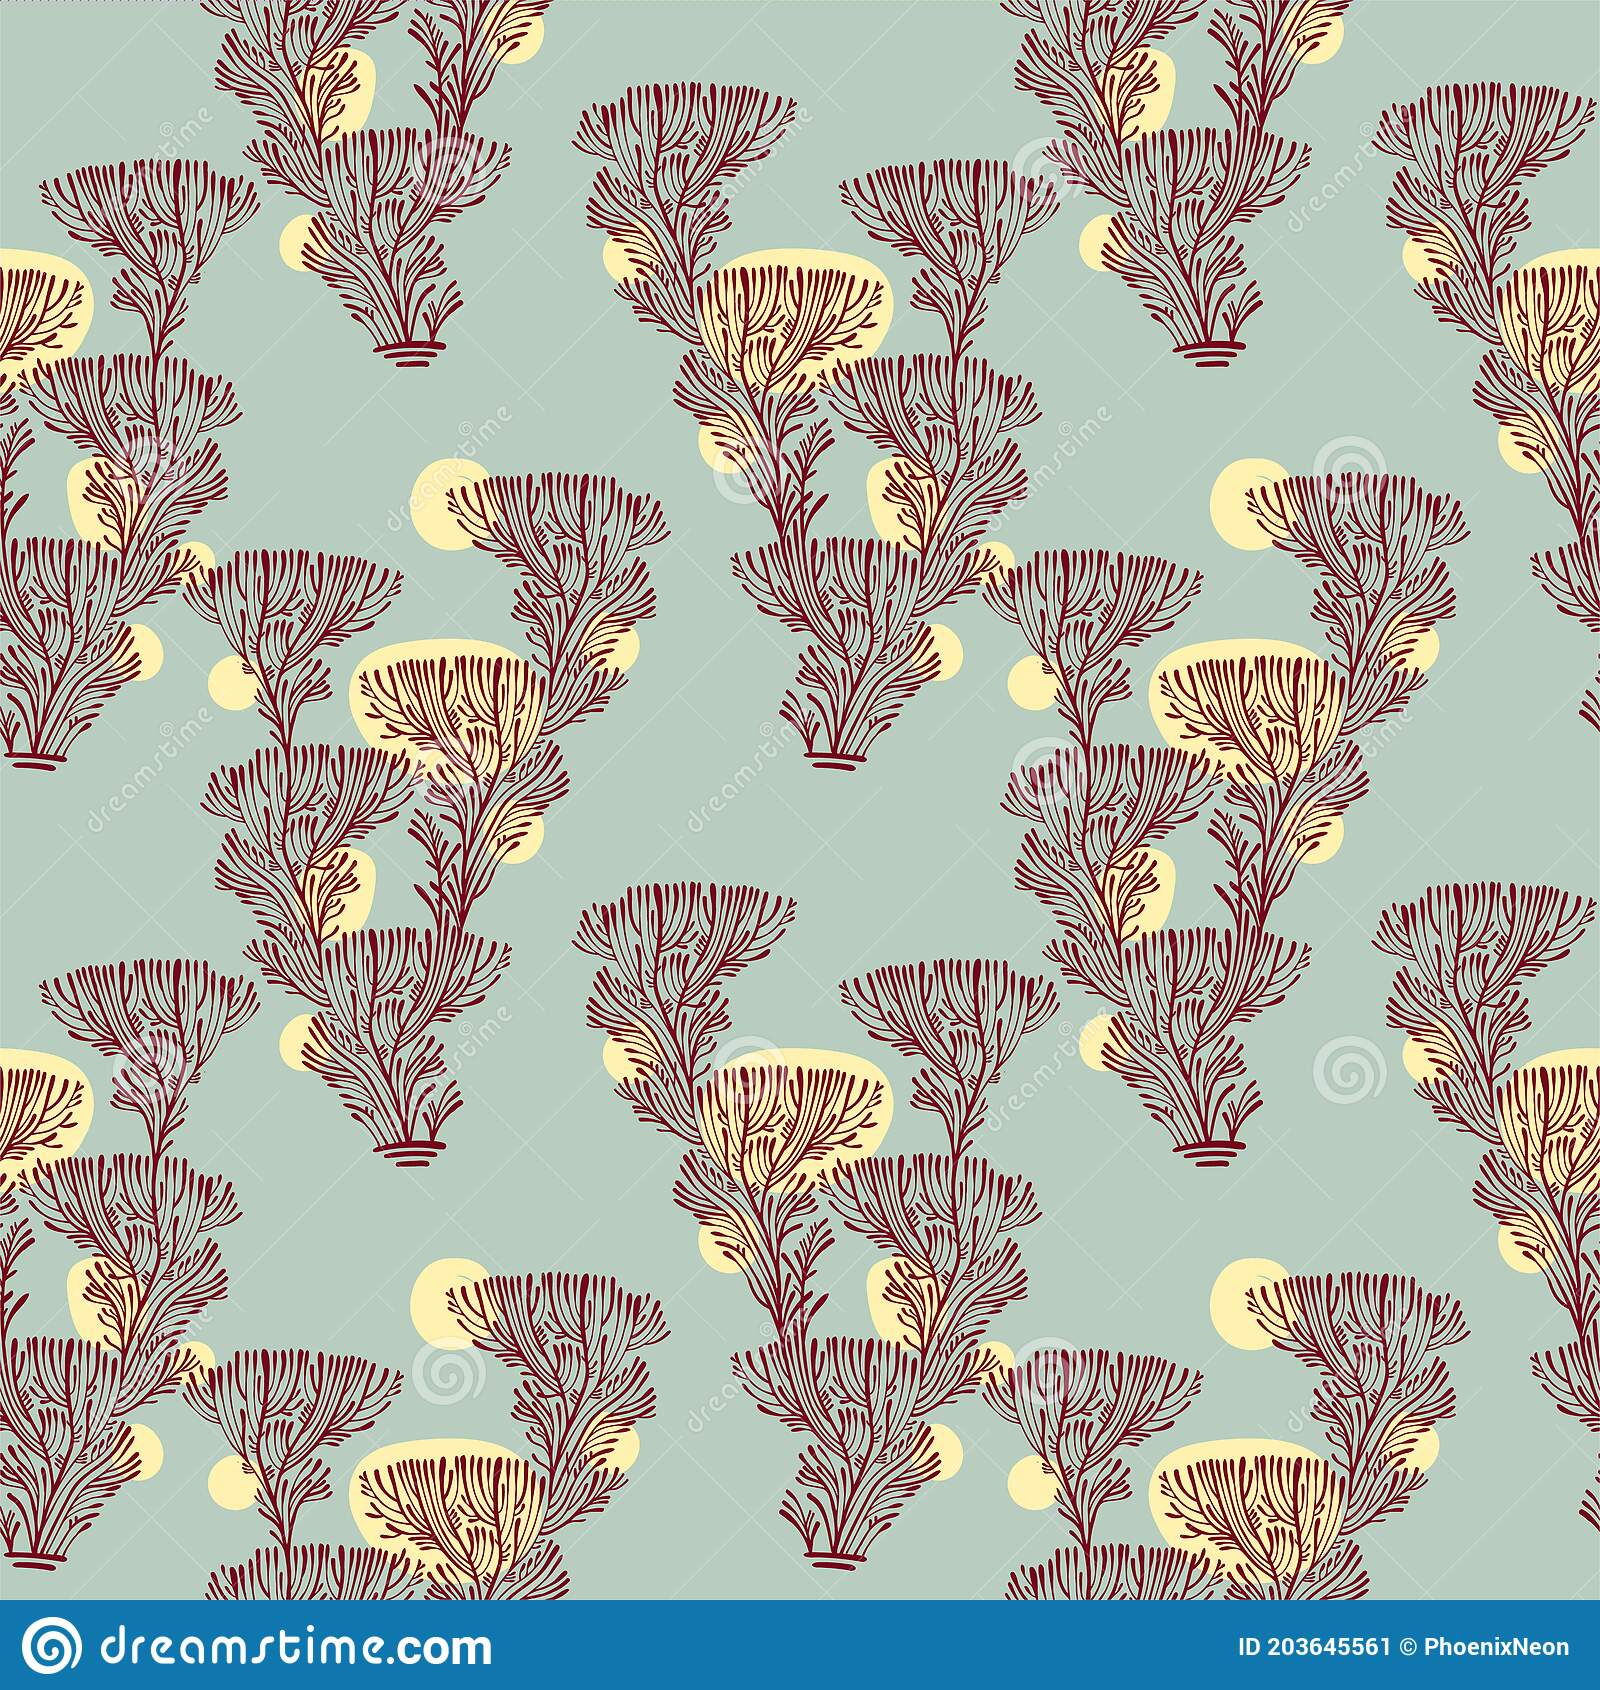 Branches Of Tree Or Coral Seamless Pattern Mellow Vintage Minimalism Aesthetic Retro Background Stock Vector Illustration Of 1970s Branch 203645561